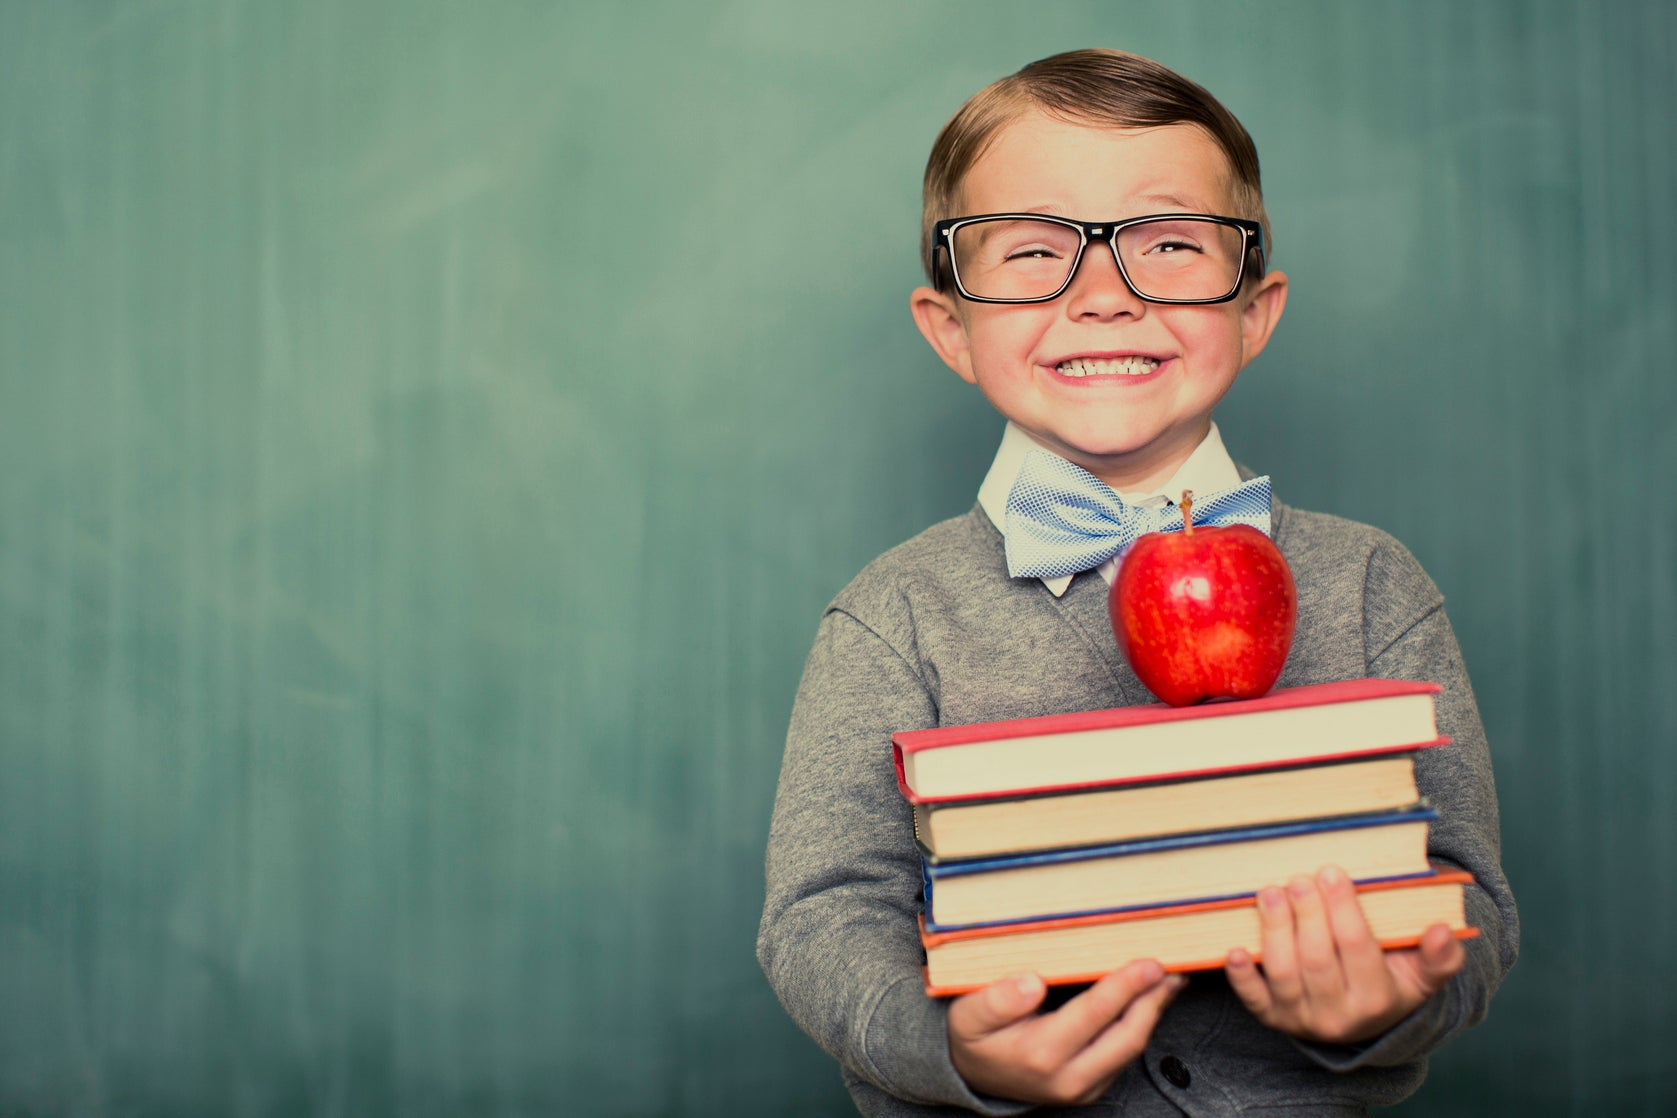 6 life lessons that should be taught in school, according to expert